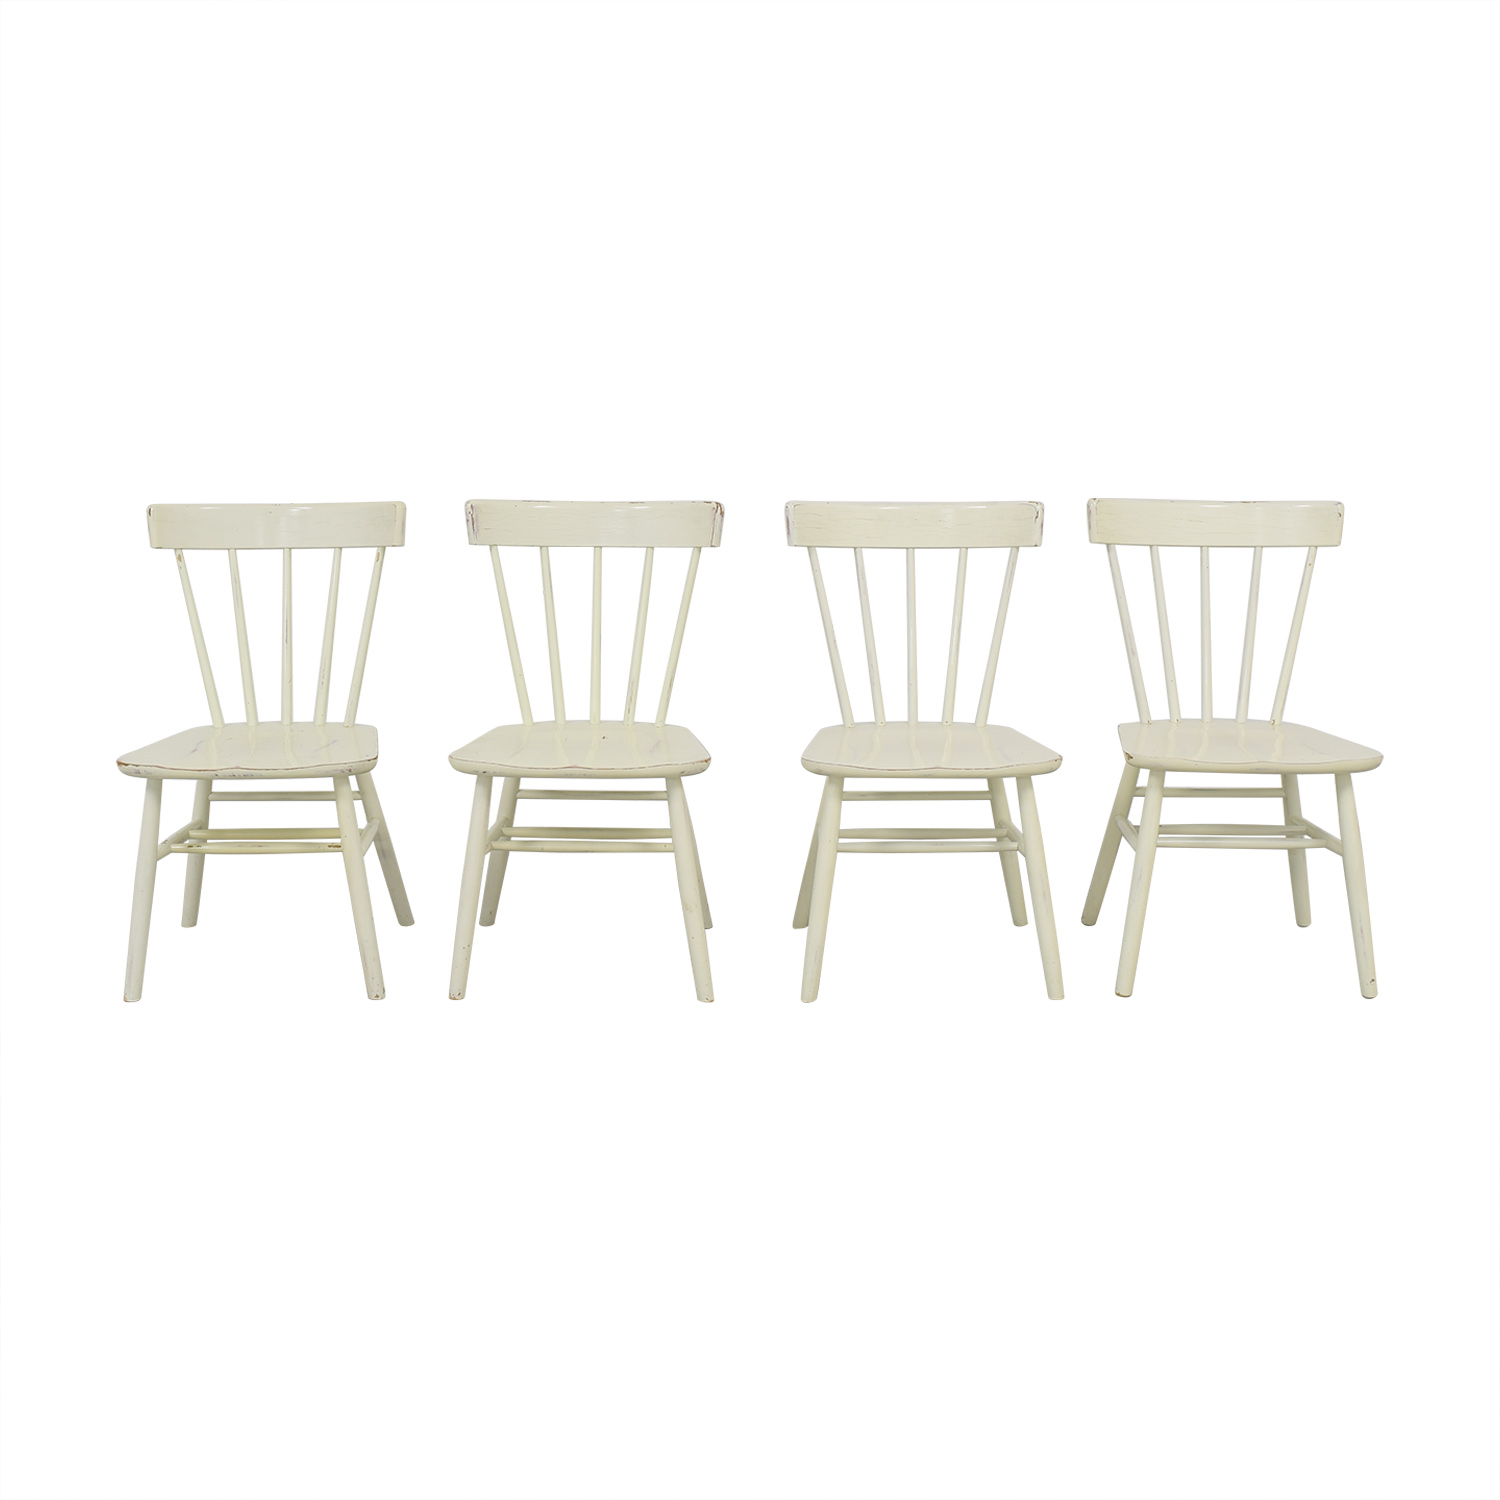 Pottery Barn Pottery Barn Rustic Dining Chairs ma